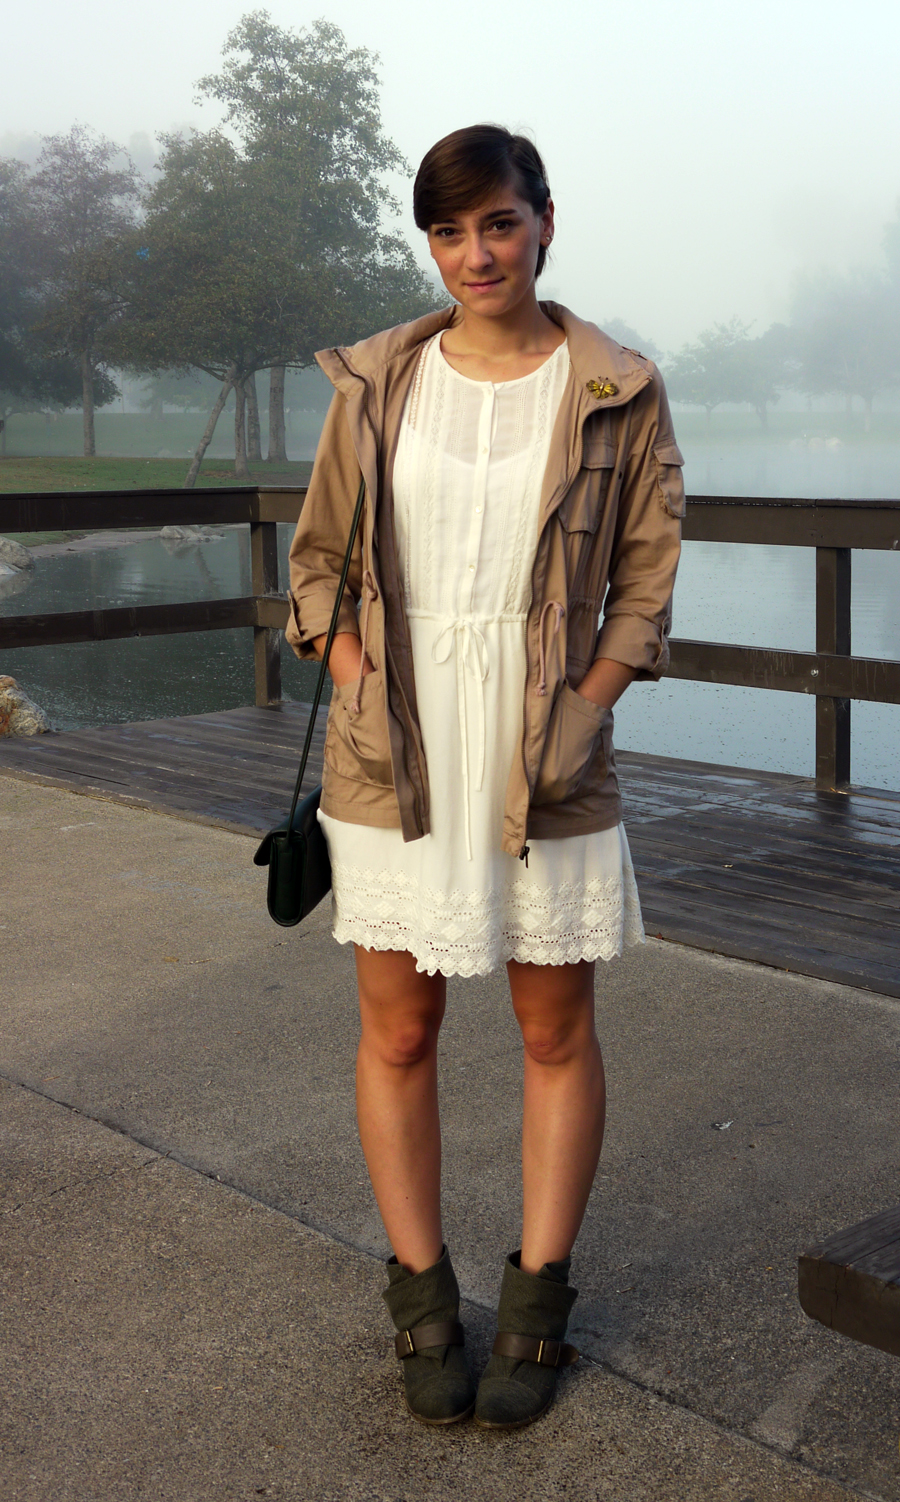 #ootd - white lace dress, military jacket, booties 01